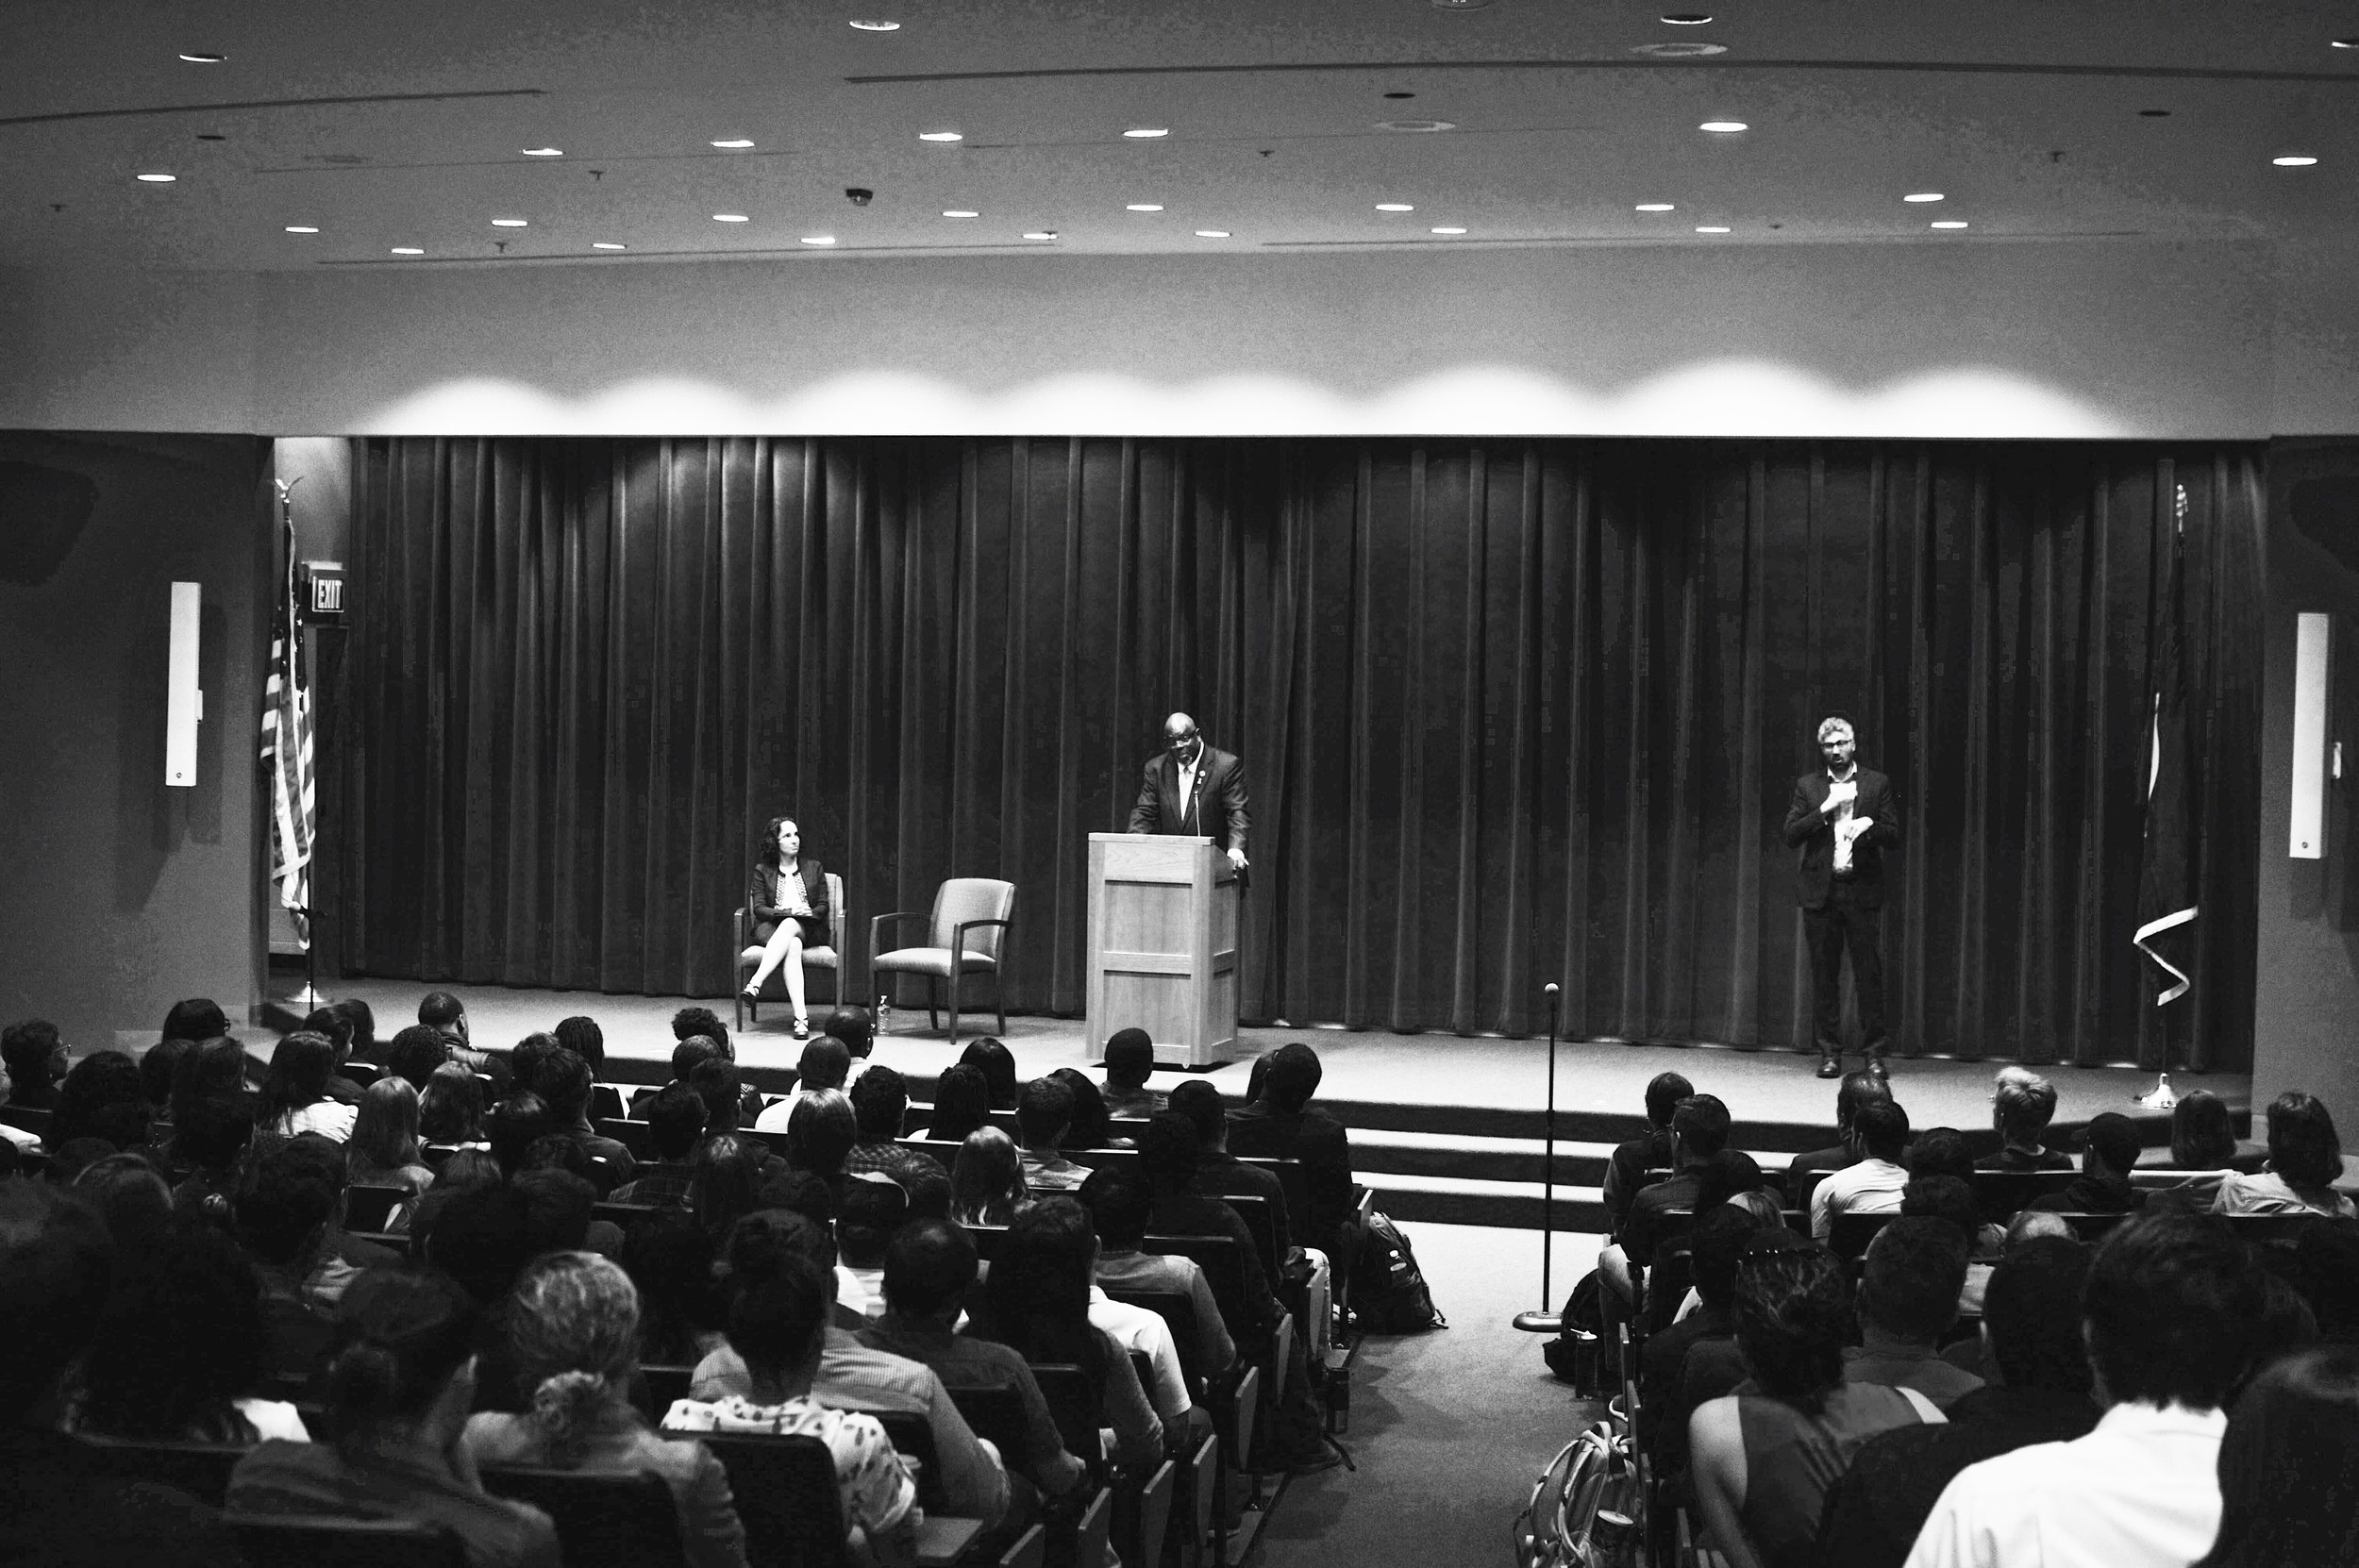 Judge Carlton Reeves '89 speaks to a full auditorium about maintaining the integrity of the judiciary. Photo credit Kolleen Gladden '21.